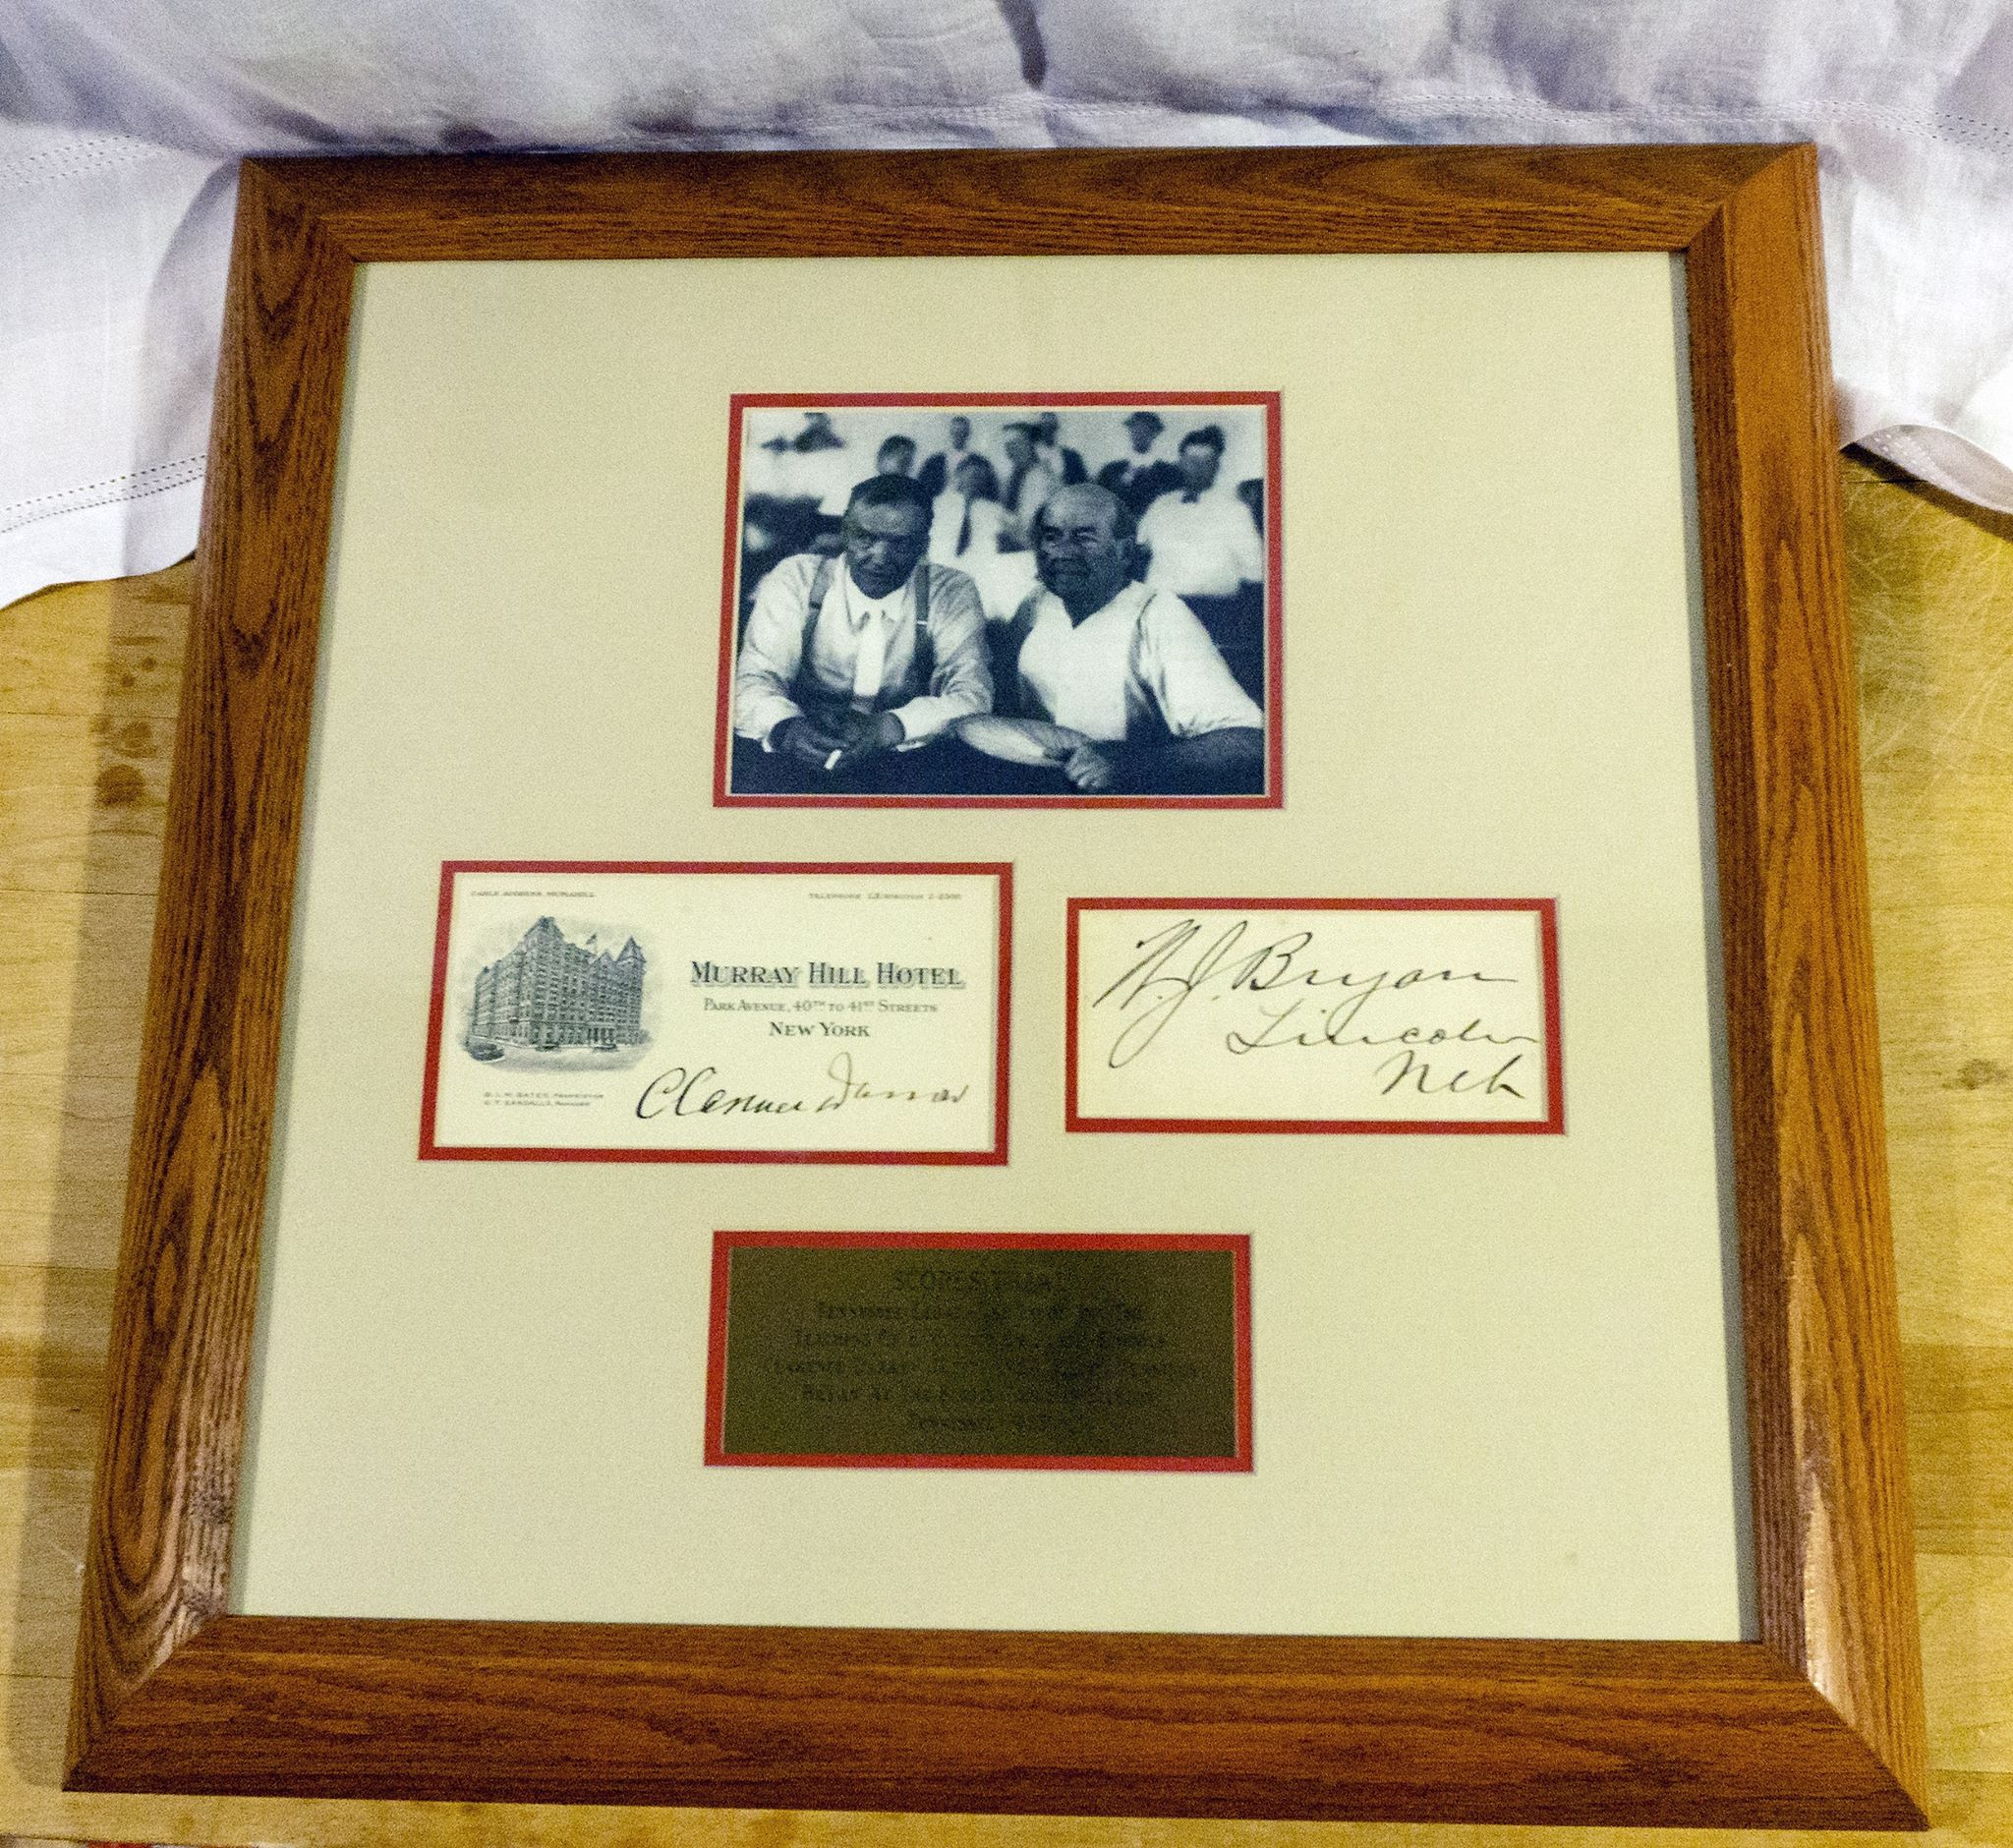 Framed Autographs Clarence Darrow and William Jennings Bryan Scopes Monkey Trial